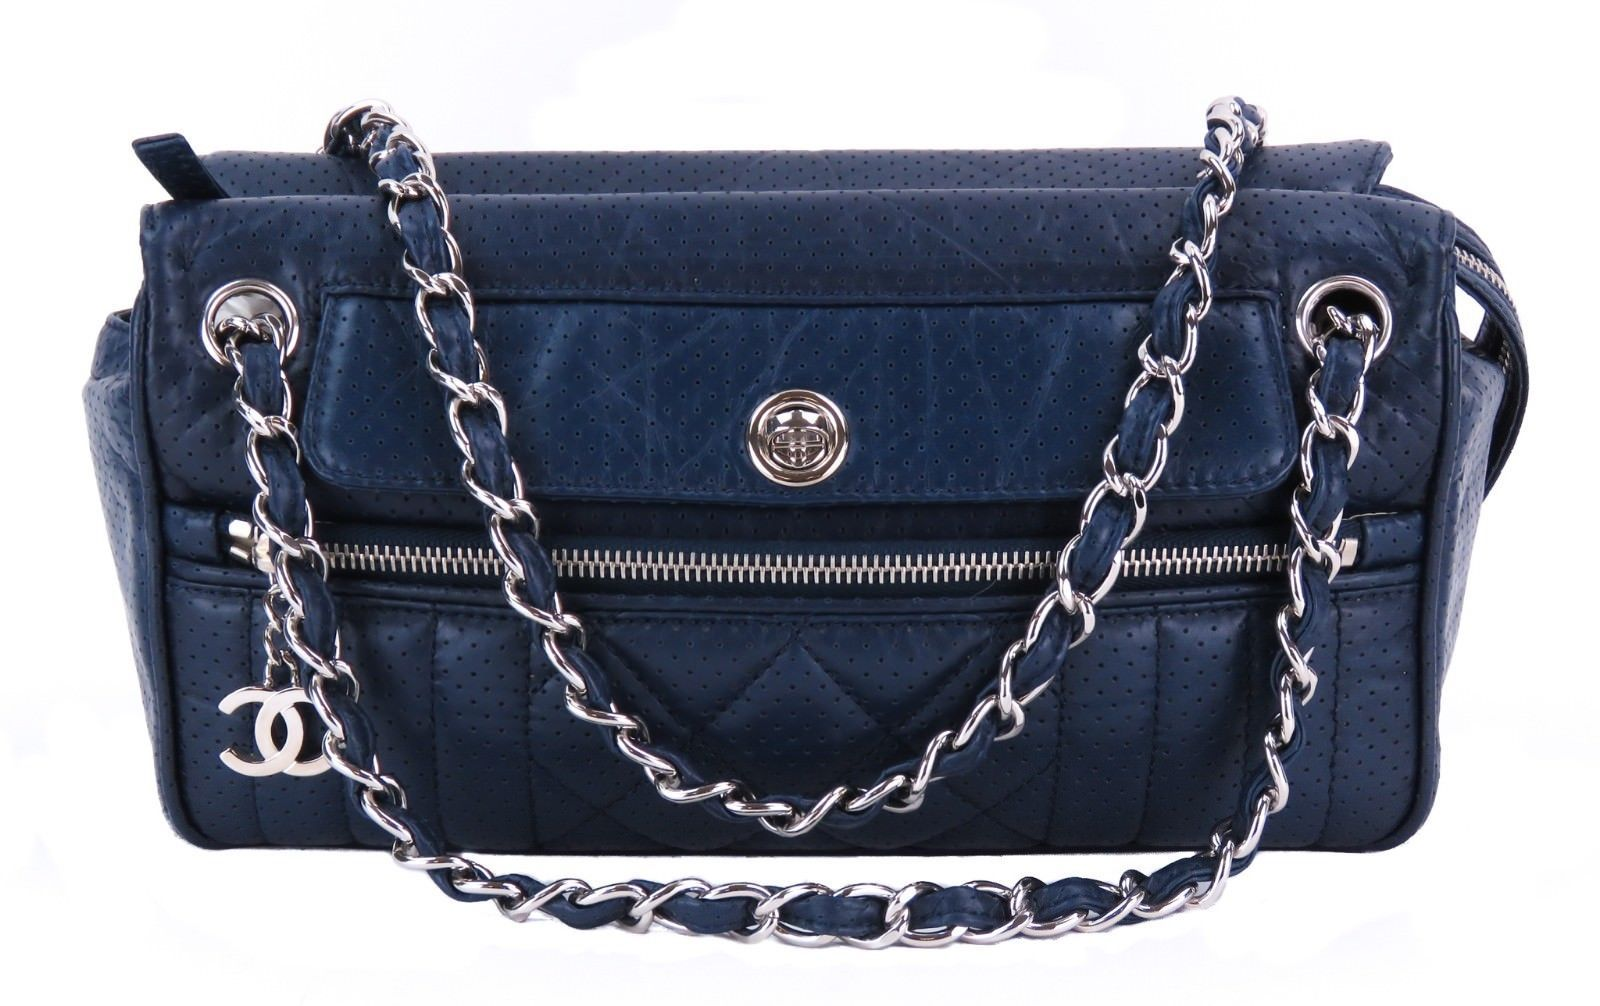 Chanel Navy Perforated Leather 50 S Shoulder Bag